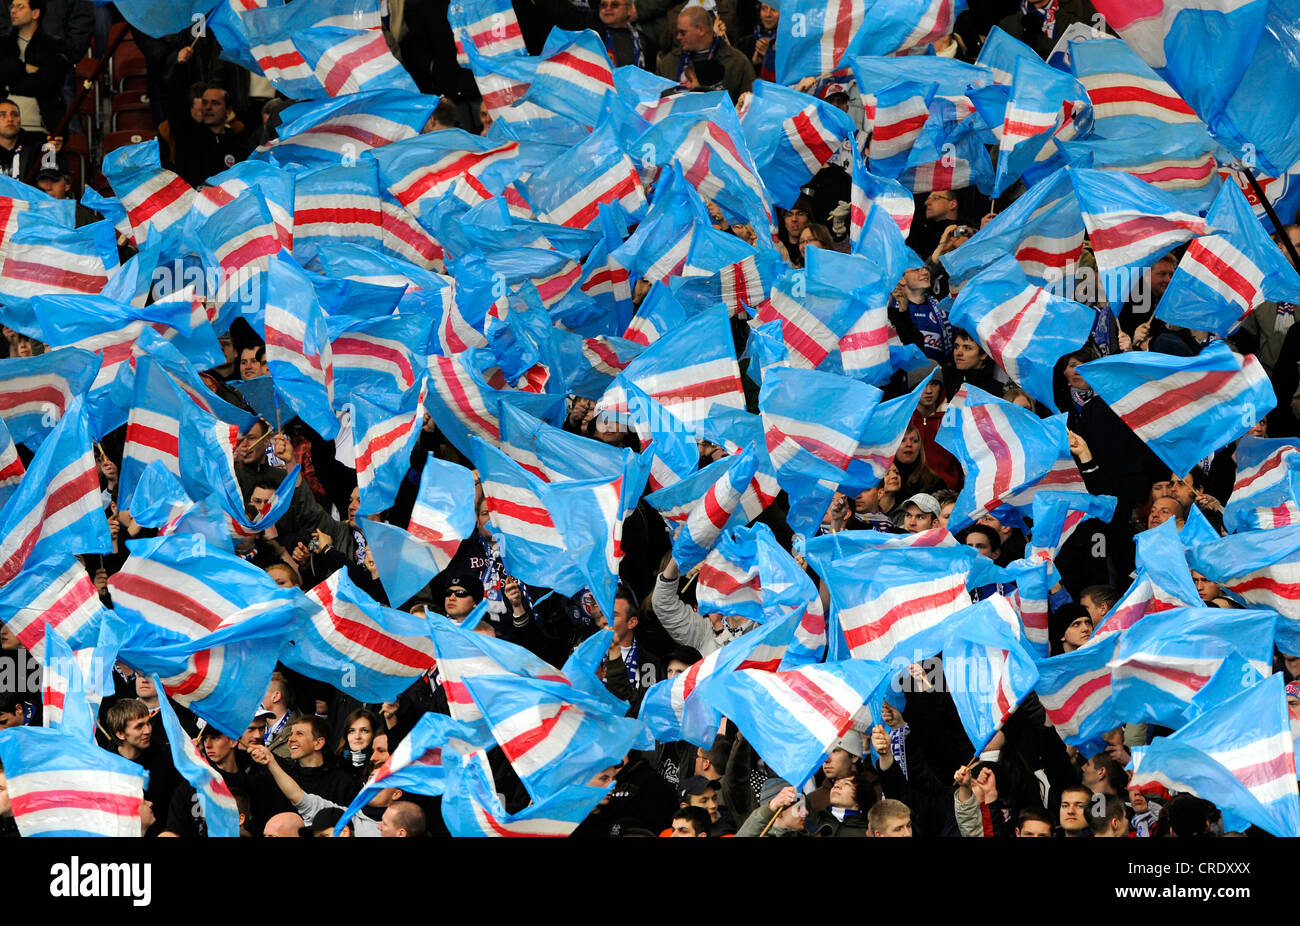 Stand With Fans Of Fc Hansa Rostock Stock Photo Alamy